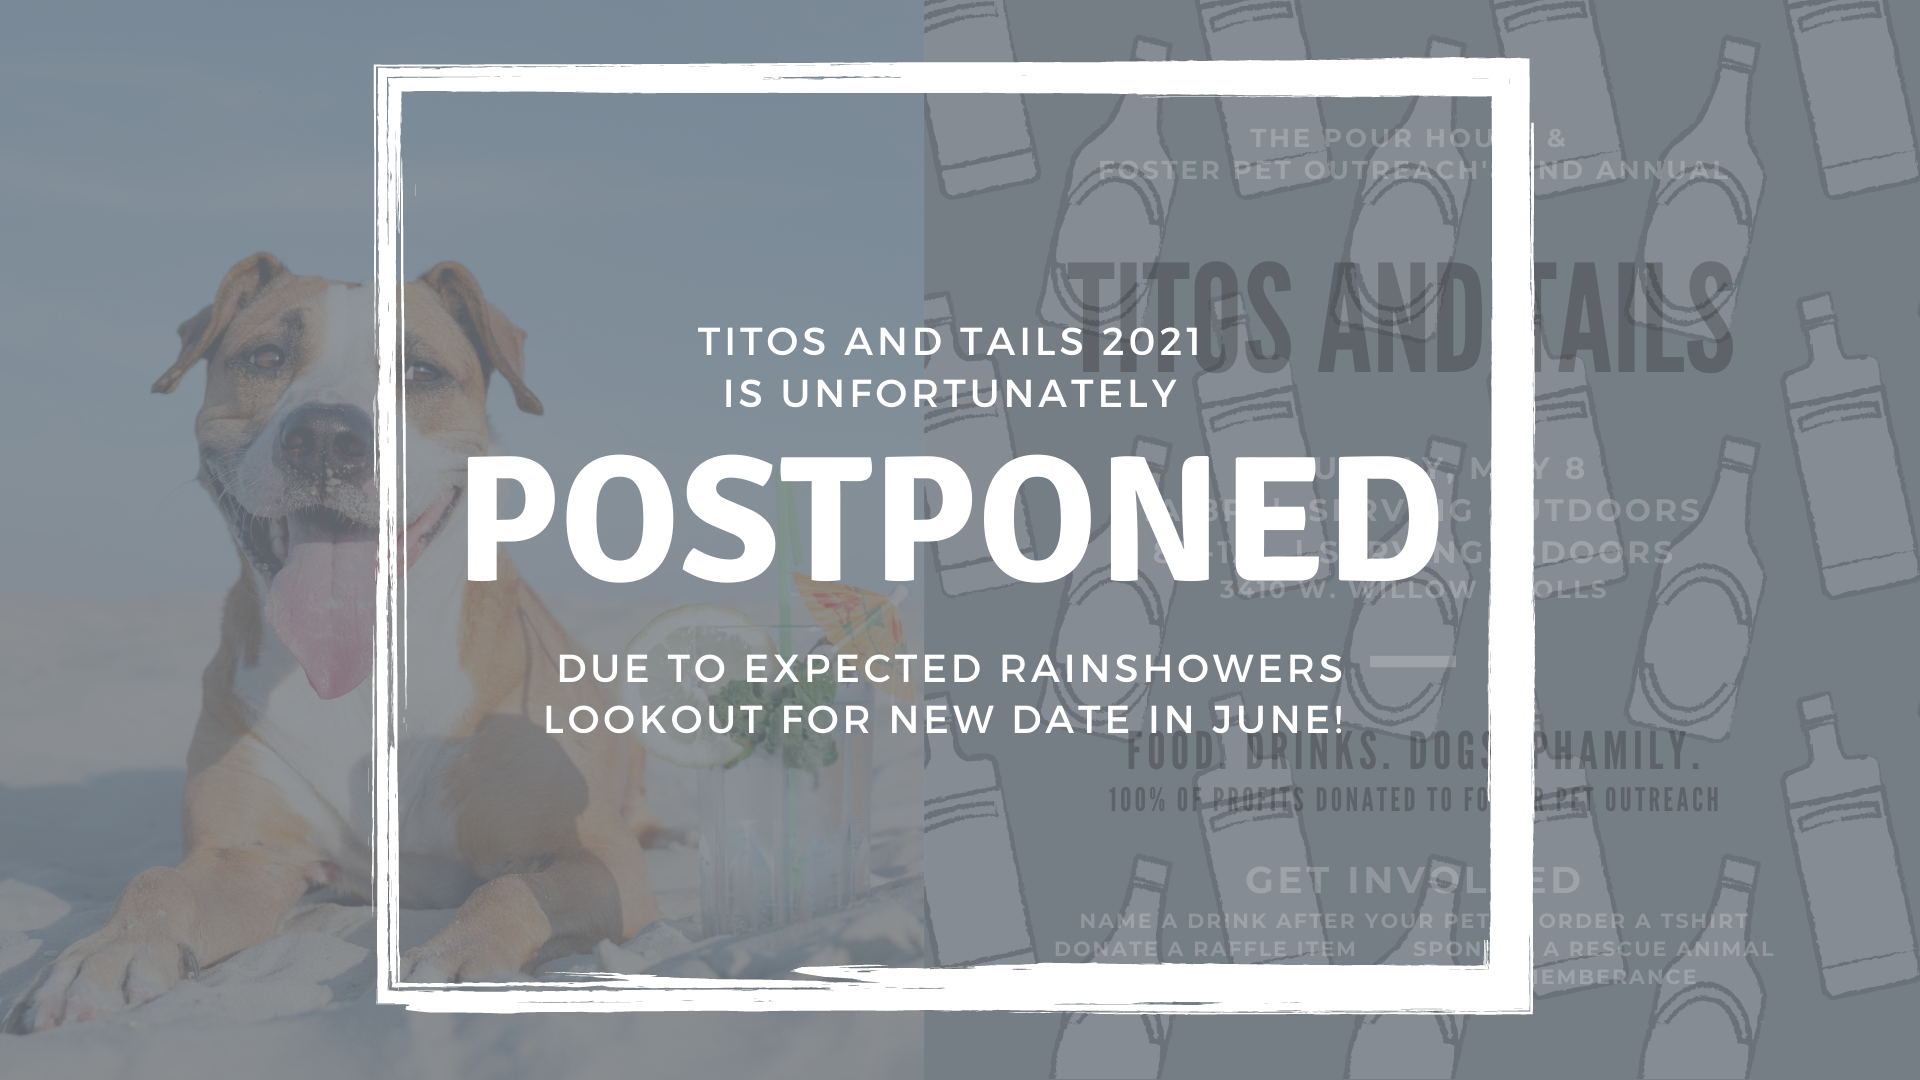 Titos and tails rain